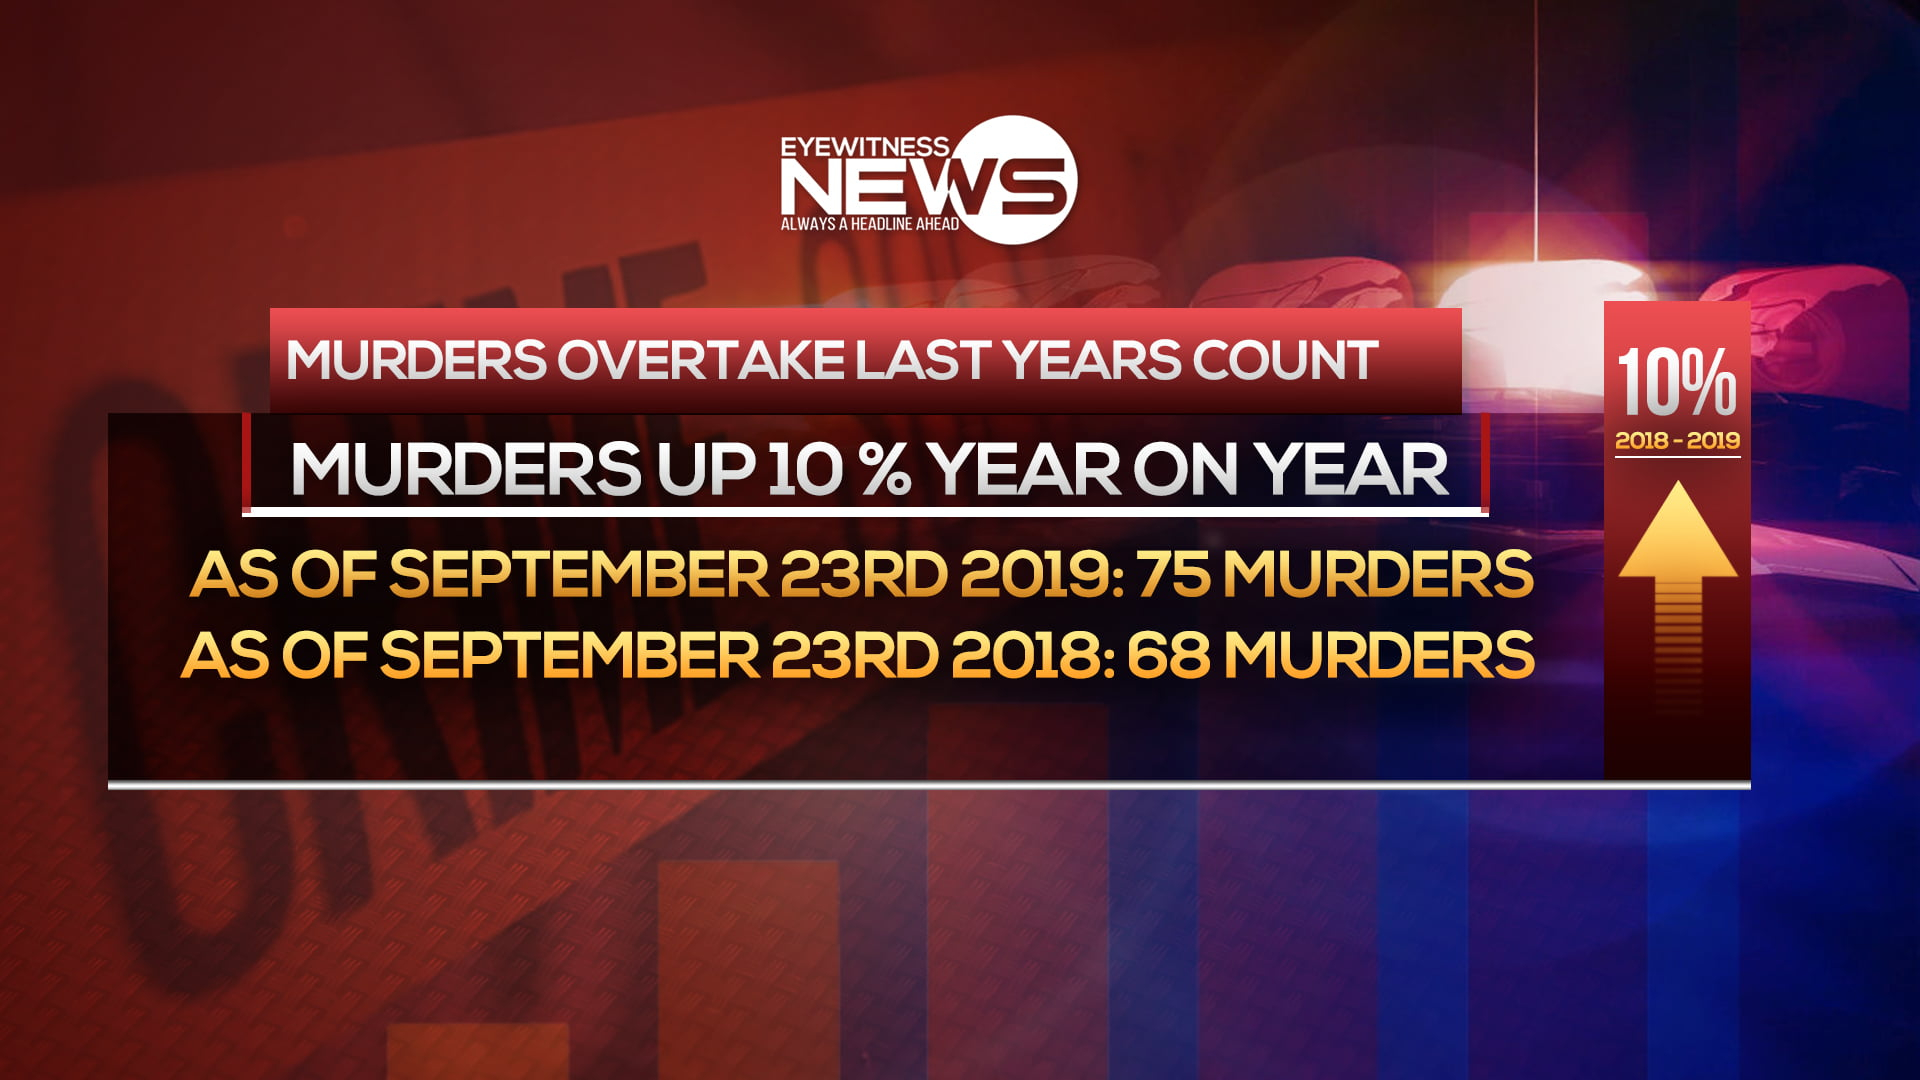 Murders surpass last year's count by 10 percent